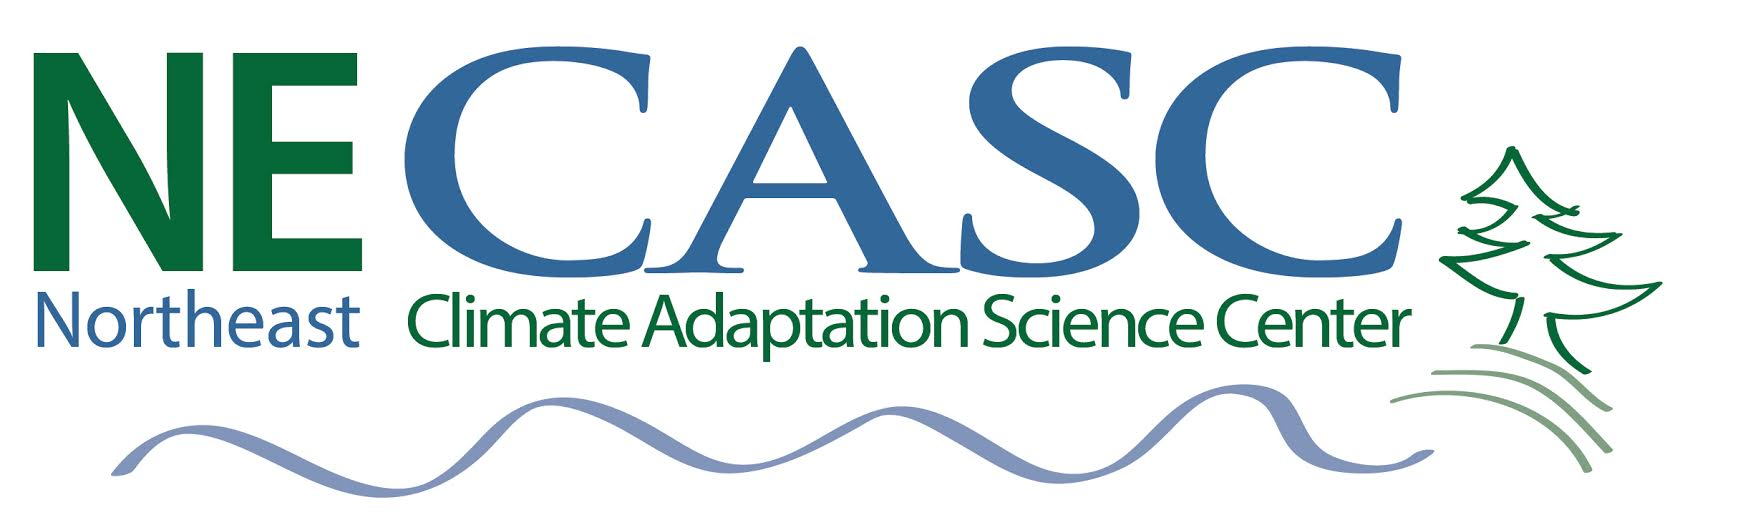 Northeast Climate Adaptation Science Center